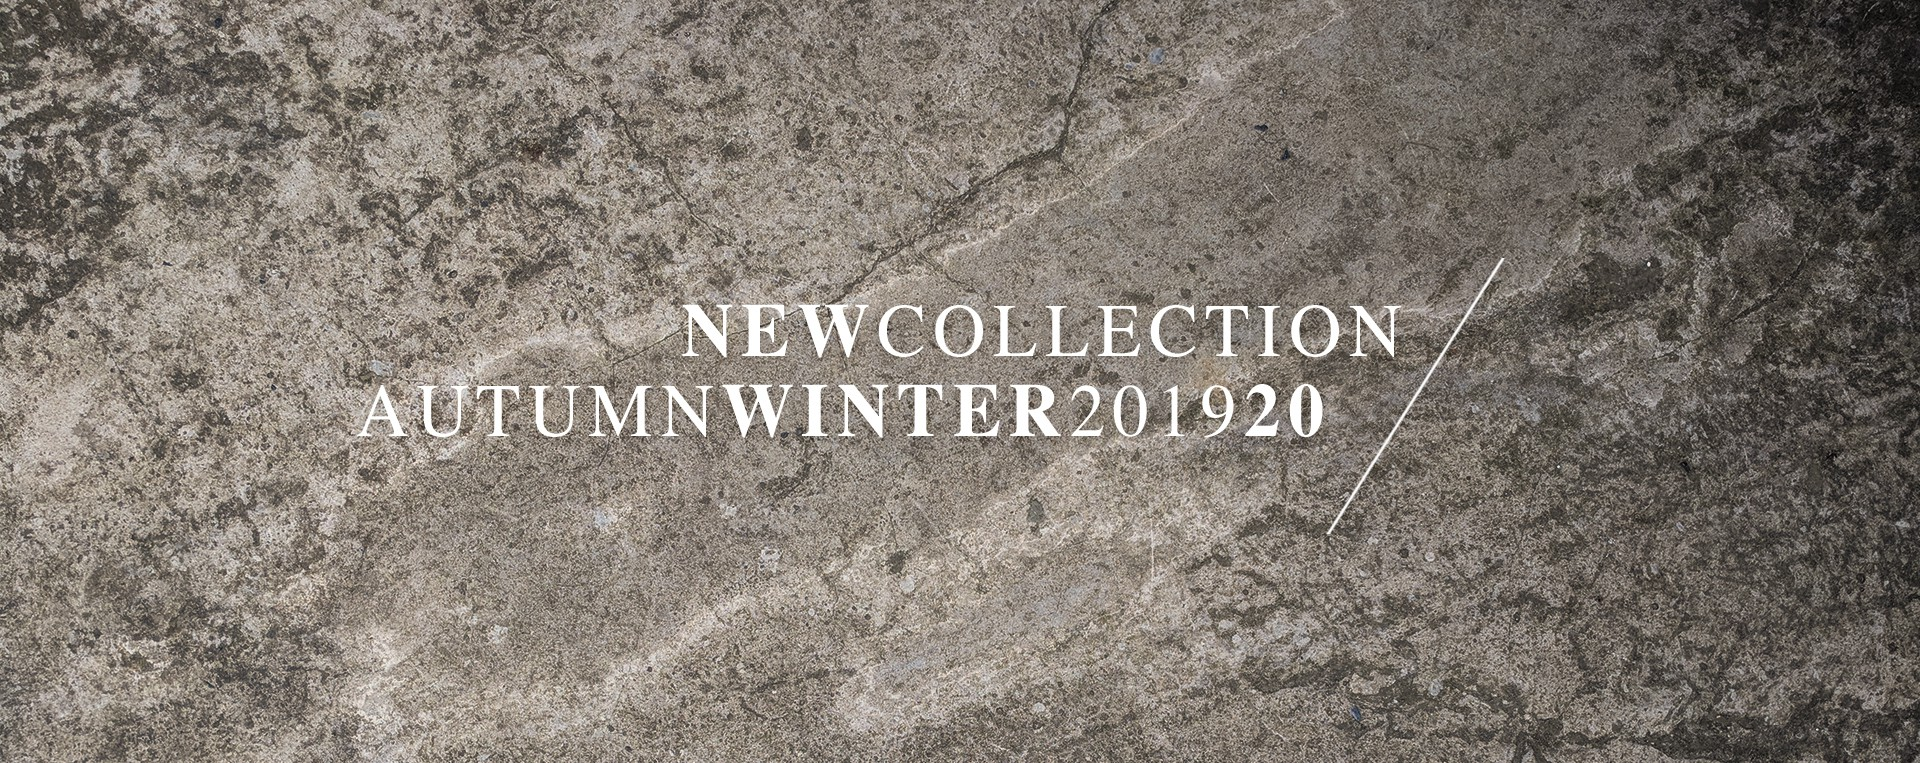 New Collection Autumn-Winter 2019